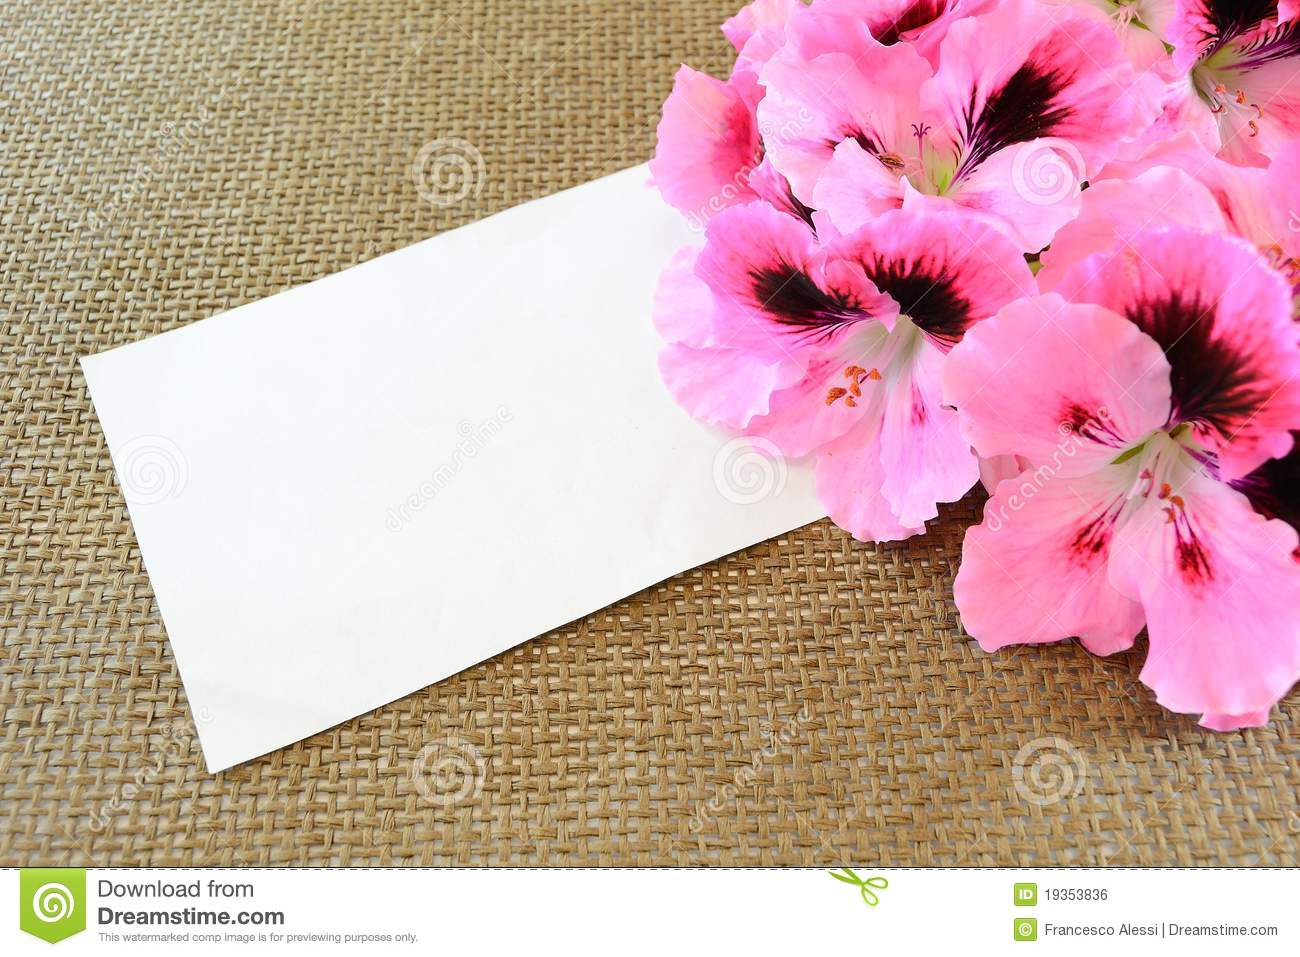 Card and geranium flowers